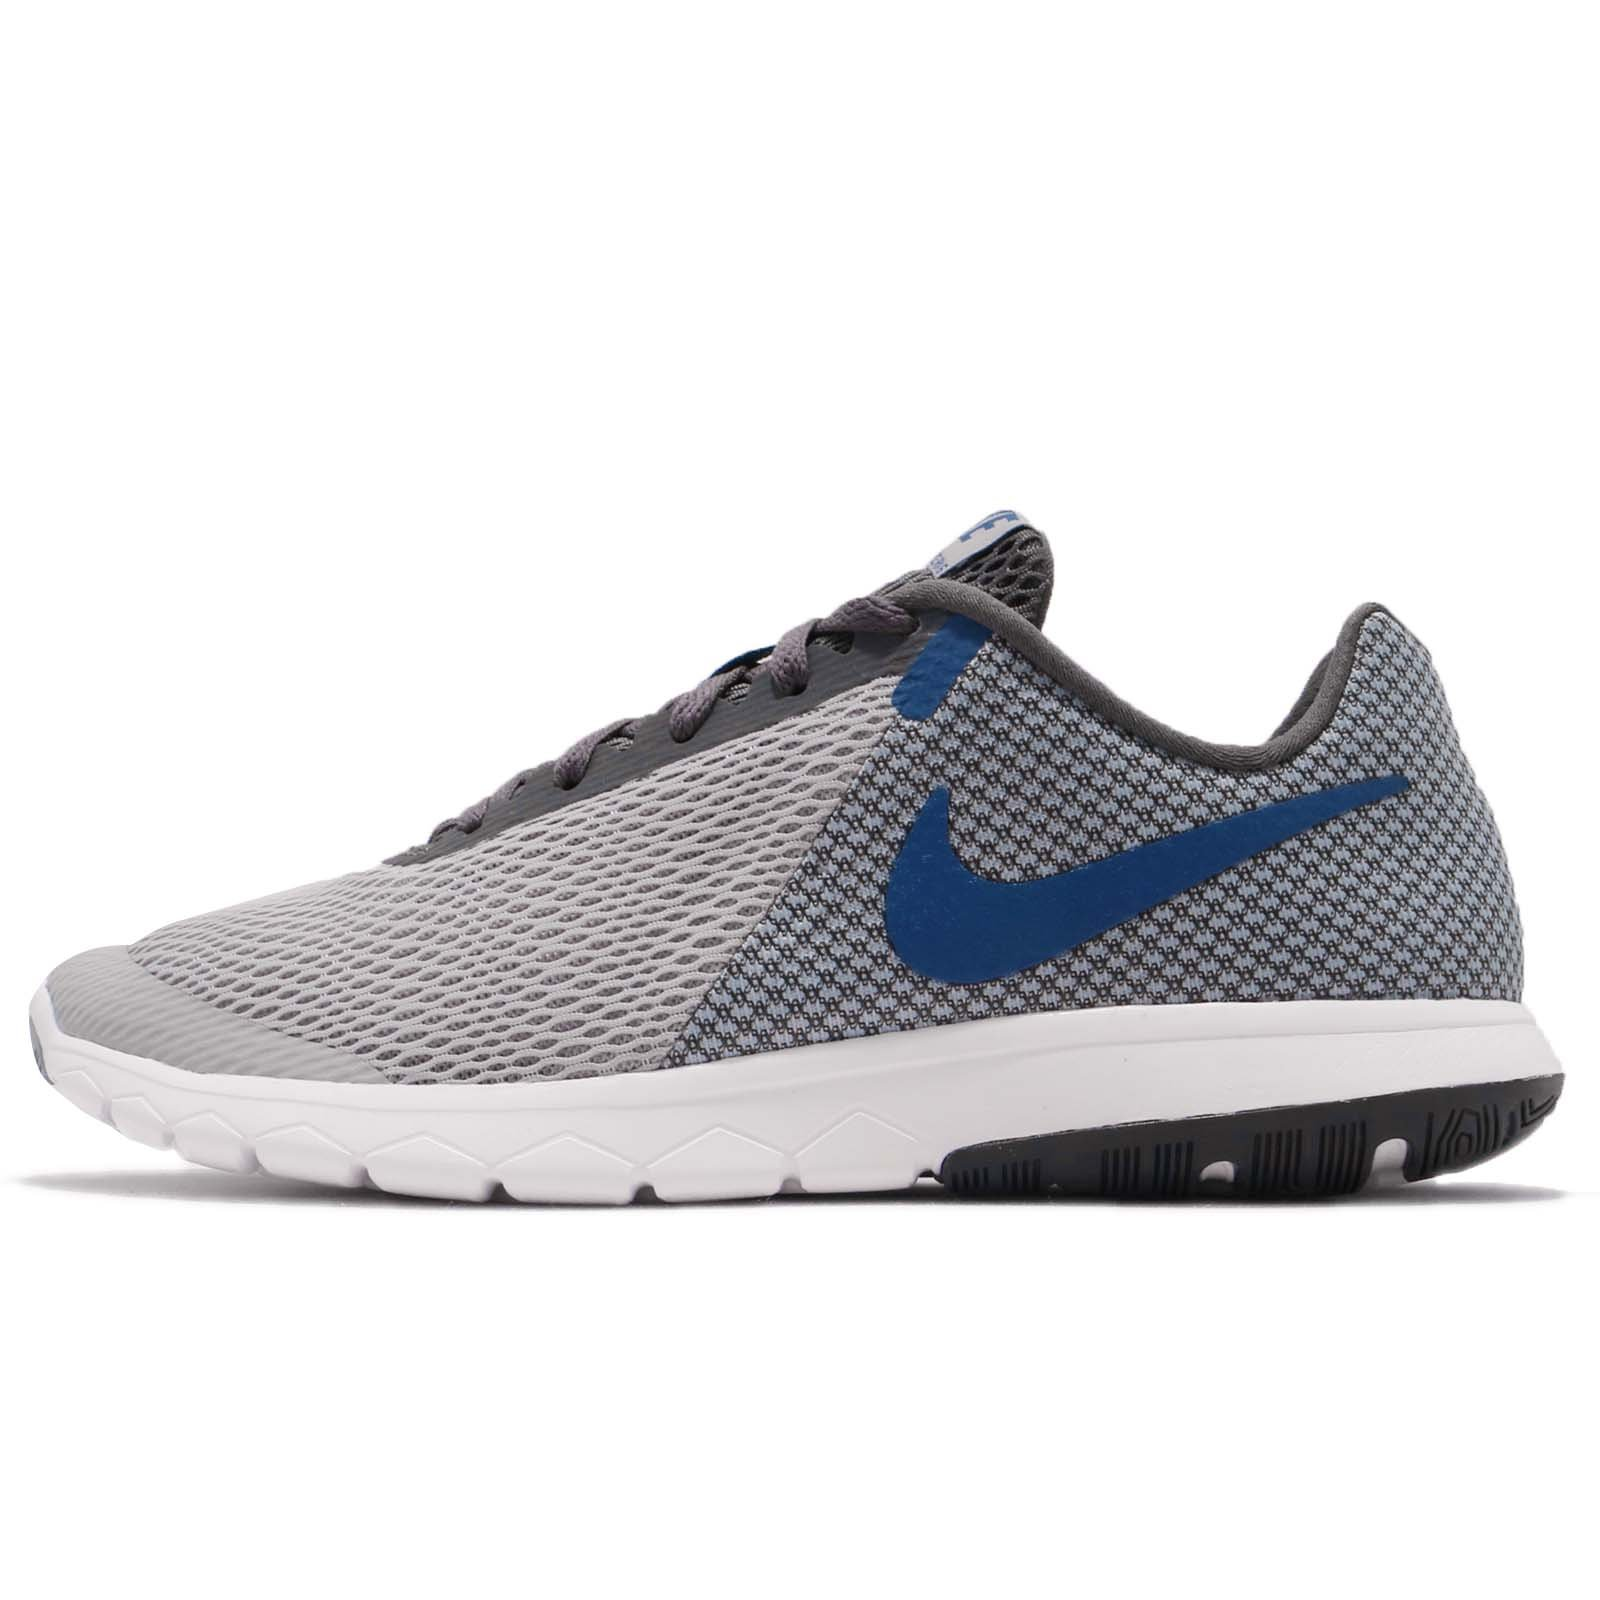 c5dd6274f41d4 Galleon - Nike Flex Experience RN 6 Mens Running Shoes